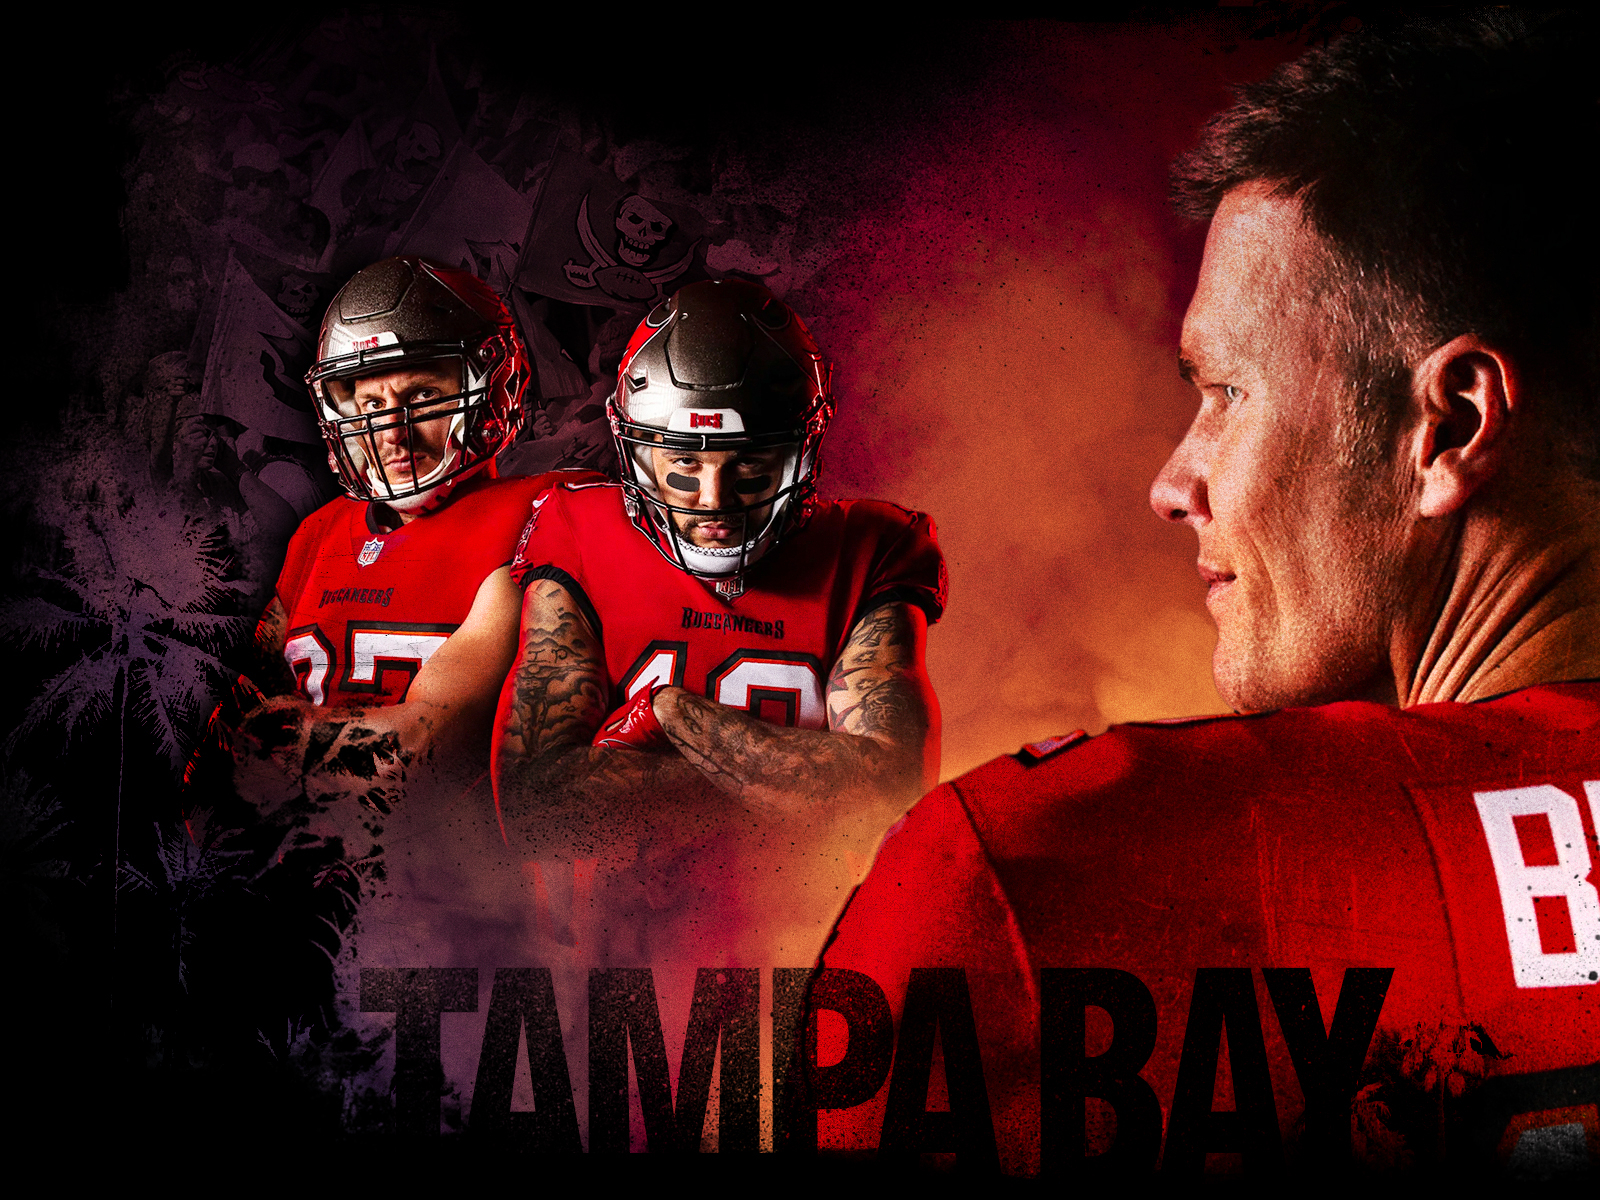 tampa bay buccaneers by sean conrad on dribbble tampa bay buccaneers by sean conrad on